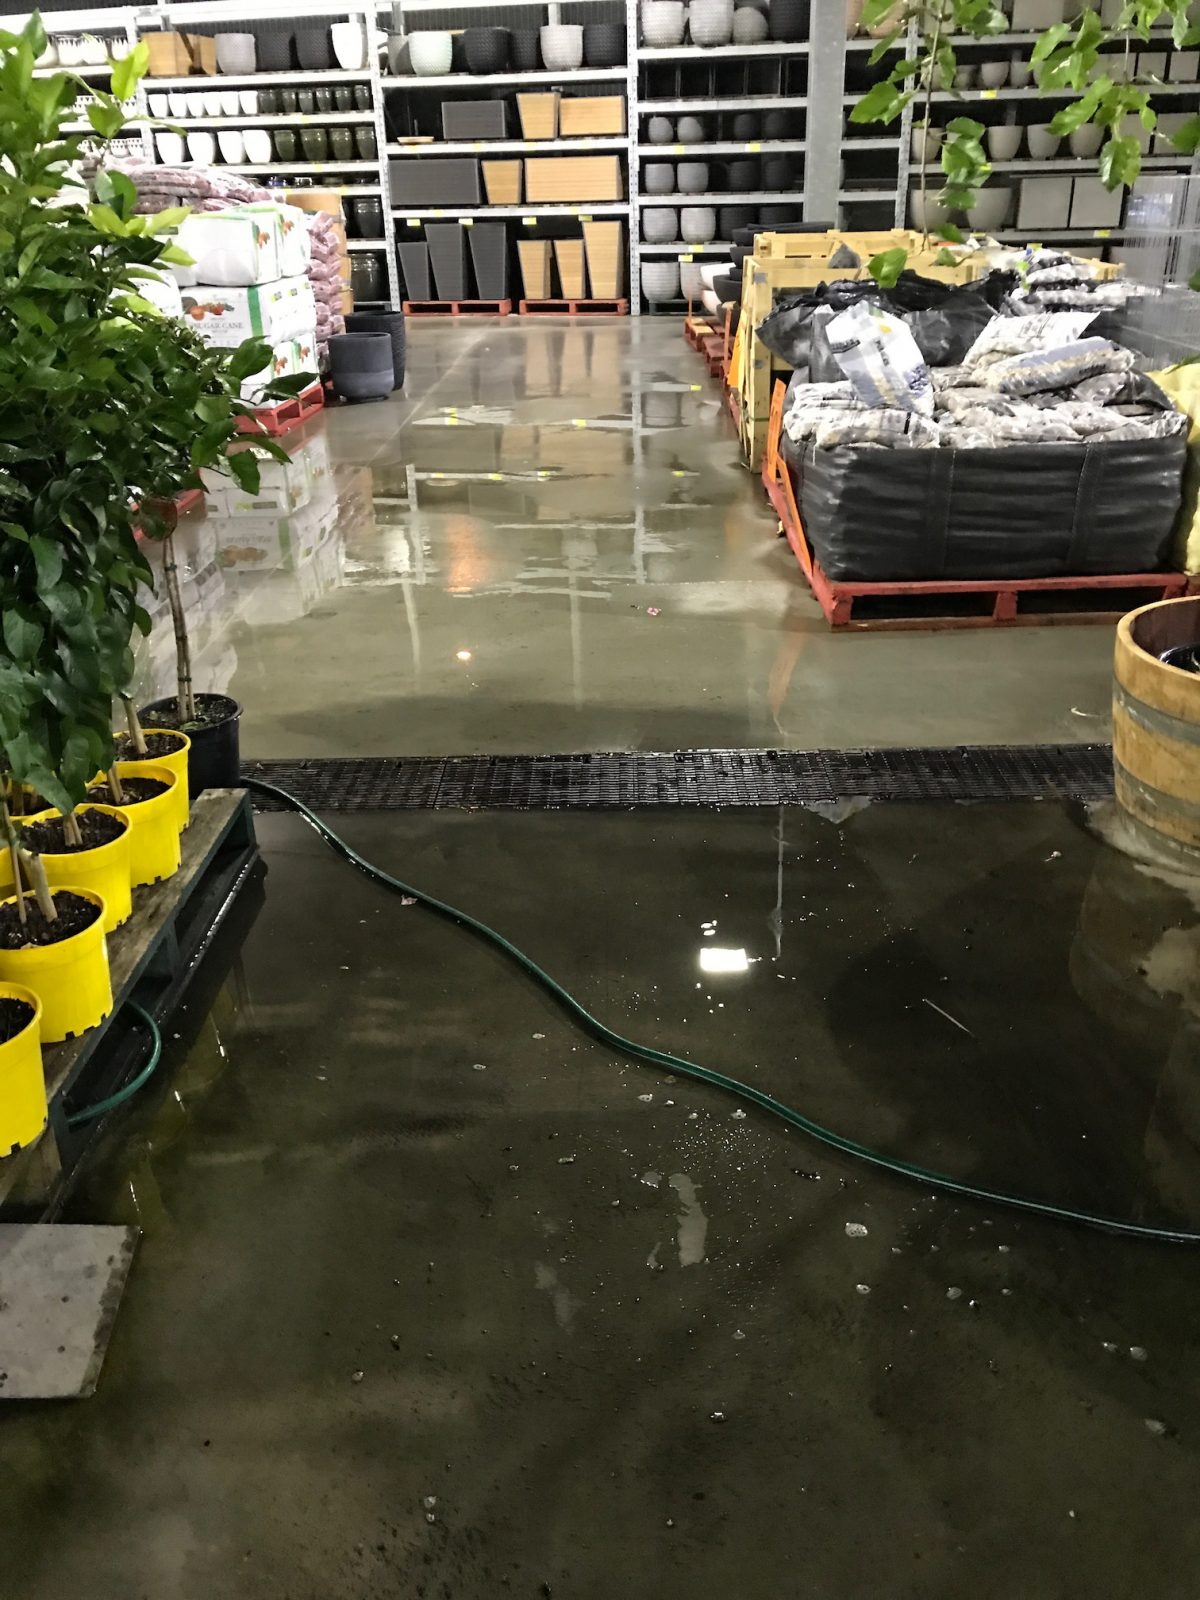 Bunnings Warehouse Clean